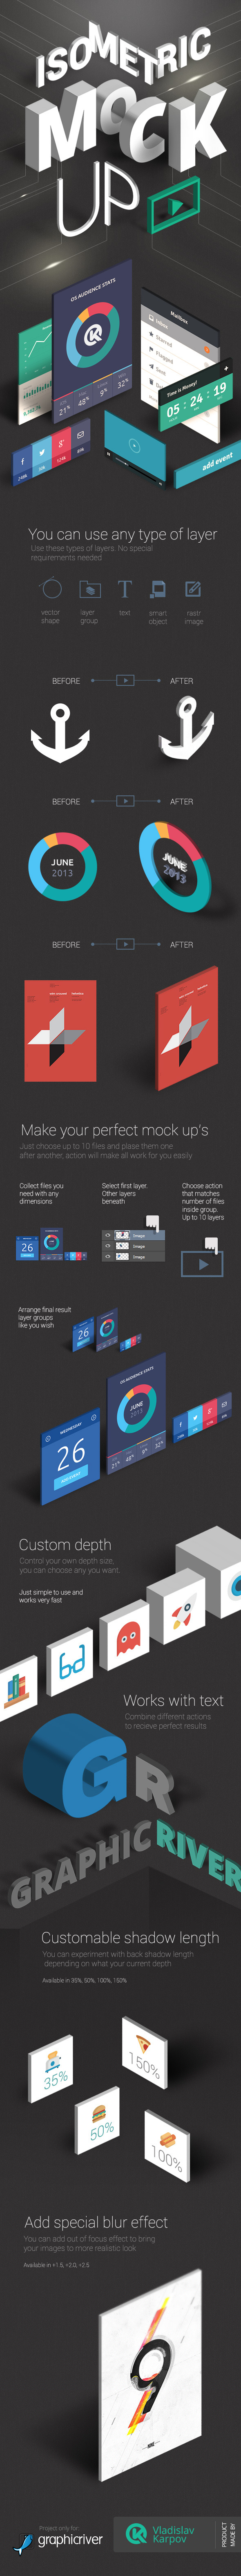 Isometric Mock-UP Actions vol.2 - Actions Photoshop